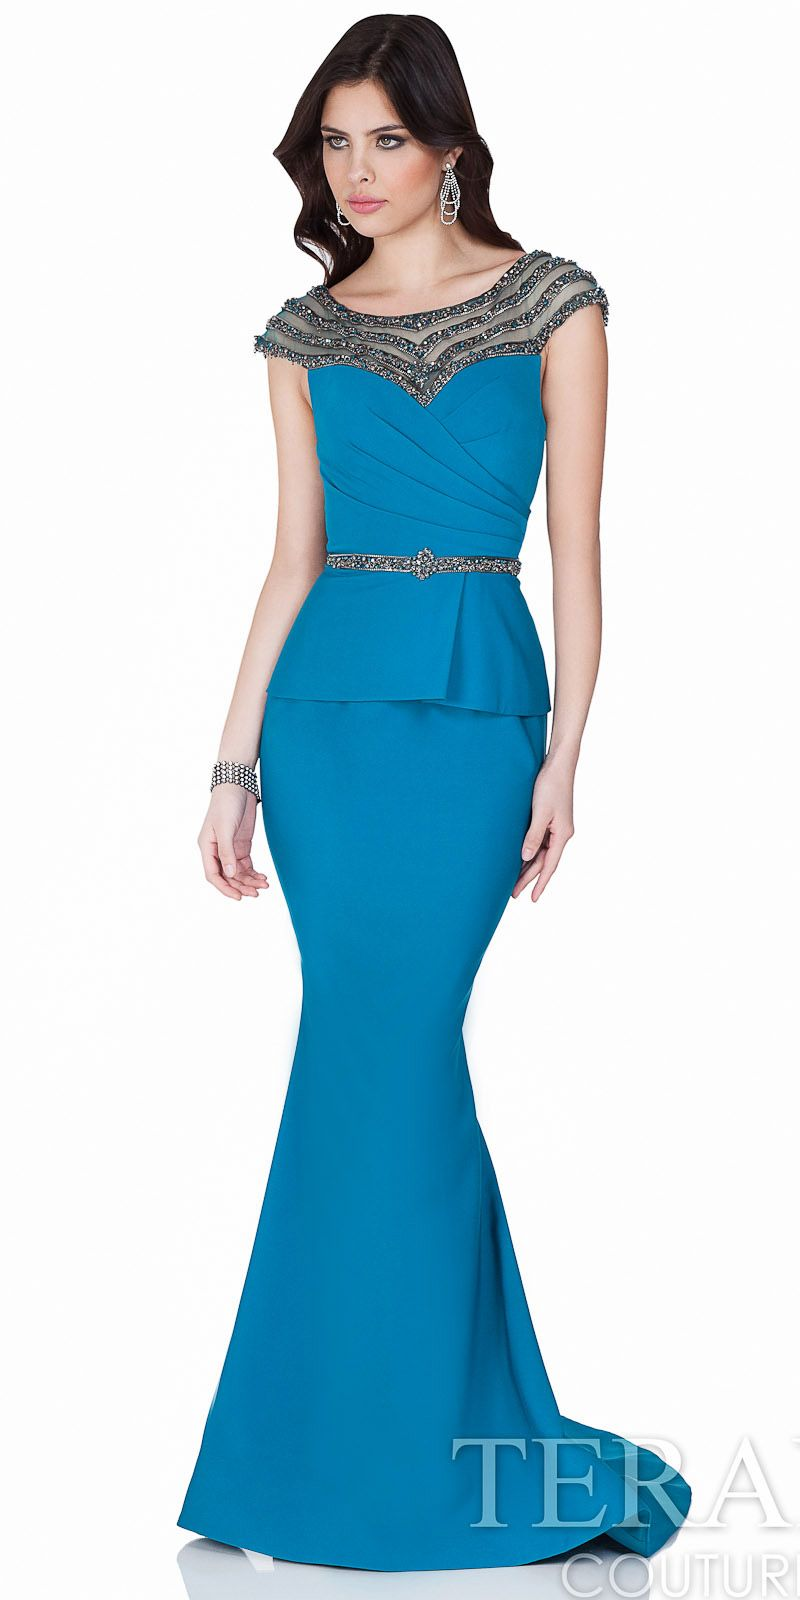 Peplum pleated beadwork evening gown by terani couture edressme